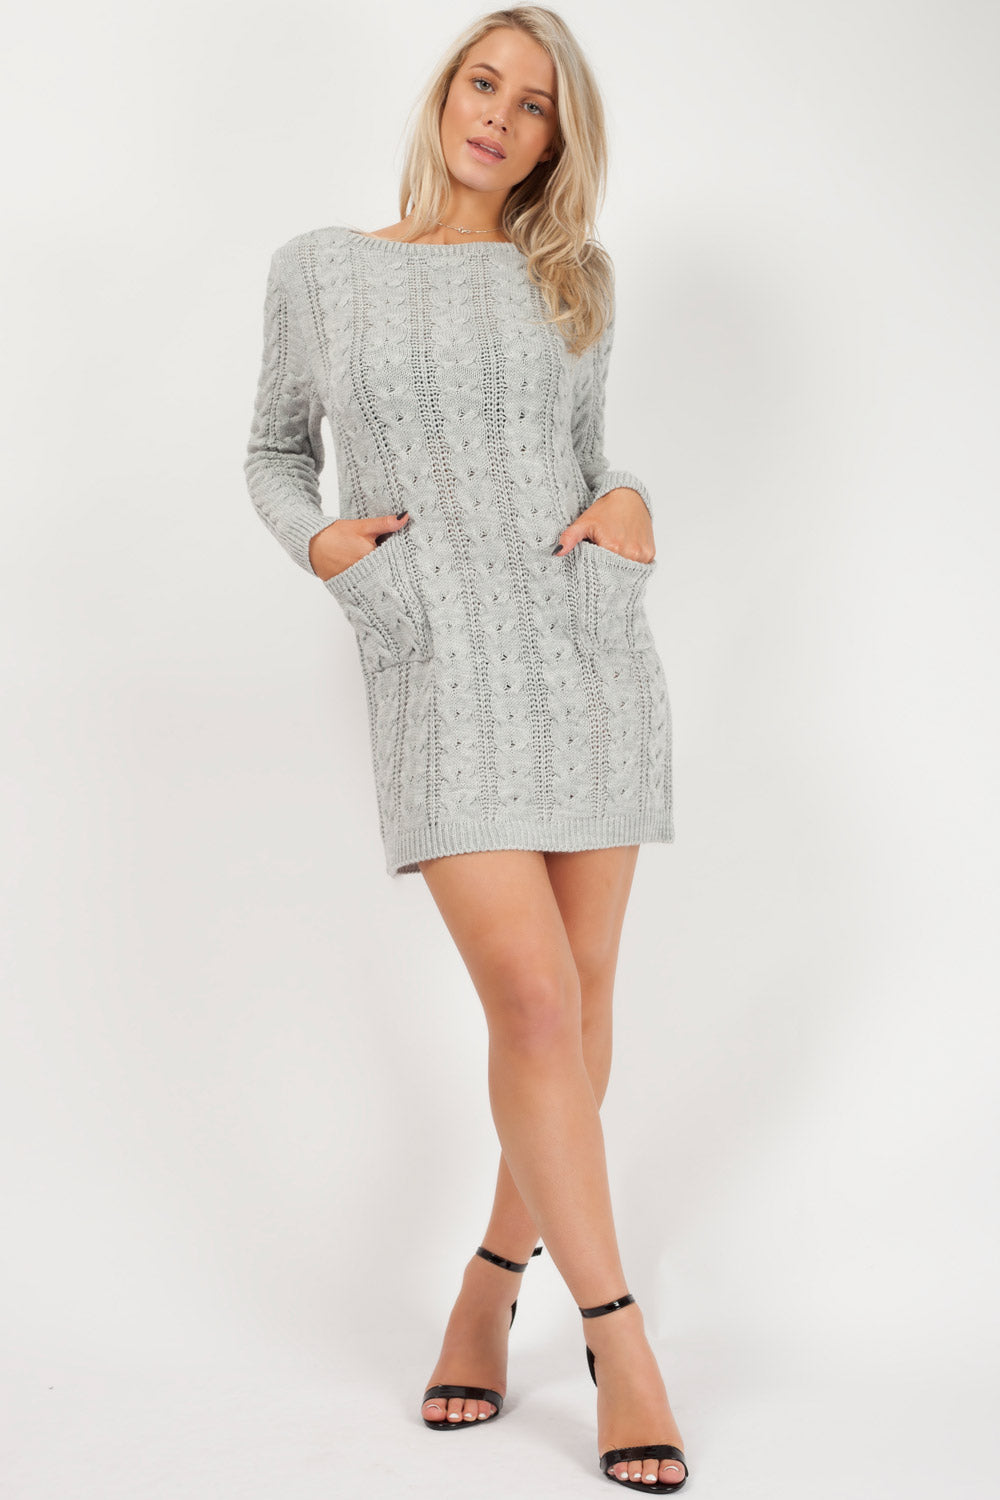 grey long sleeve sweater dress uk